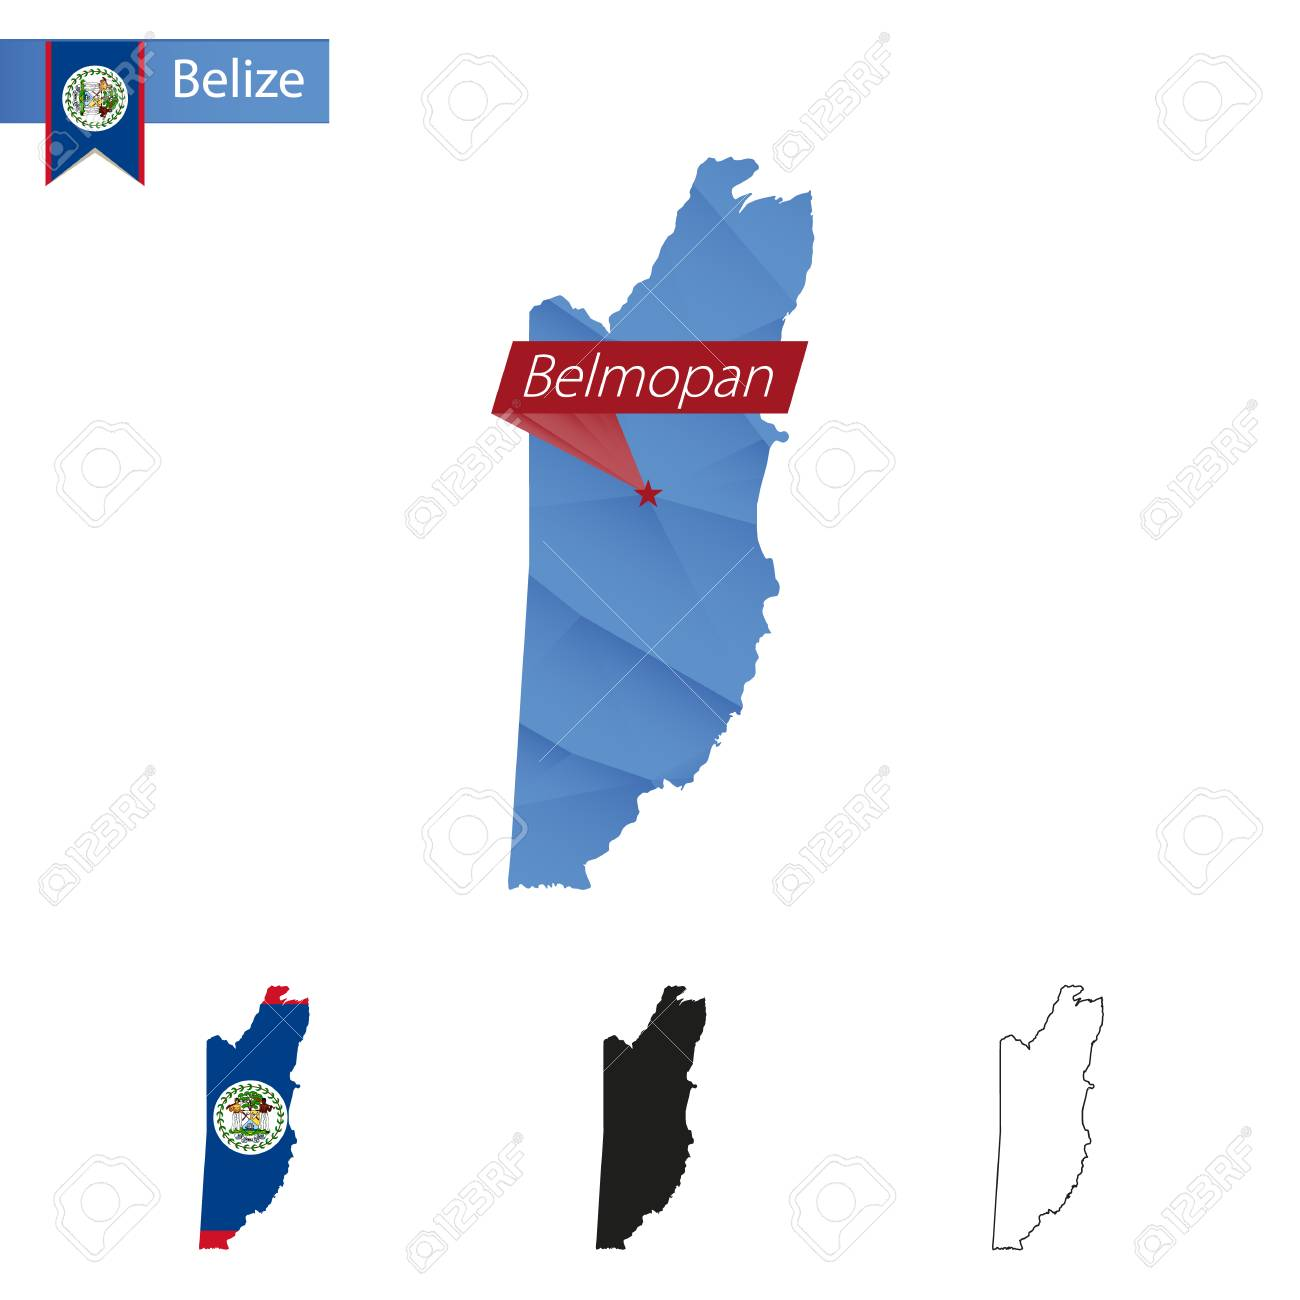 Belize Blue Low Poly Map With Capital Belmopan Versions With - belmopan map